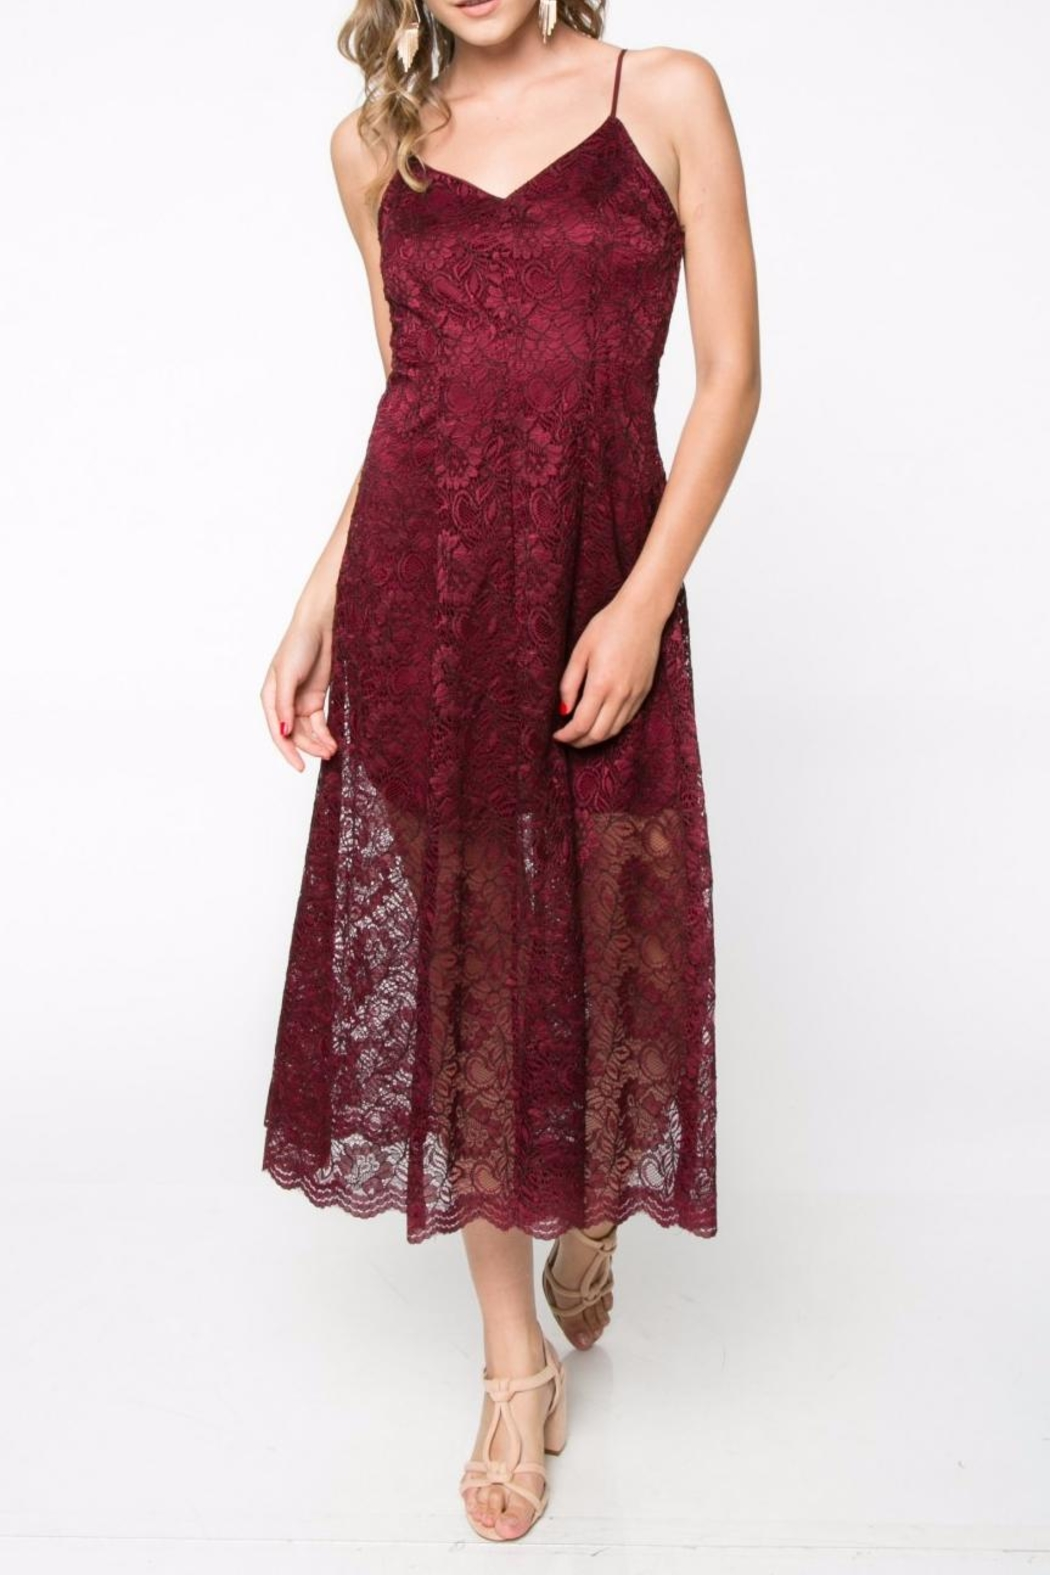 Everly Lace Midi Dress - Main Image